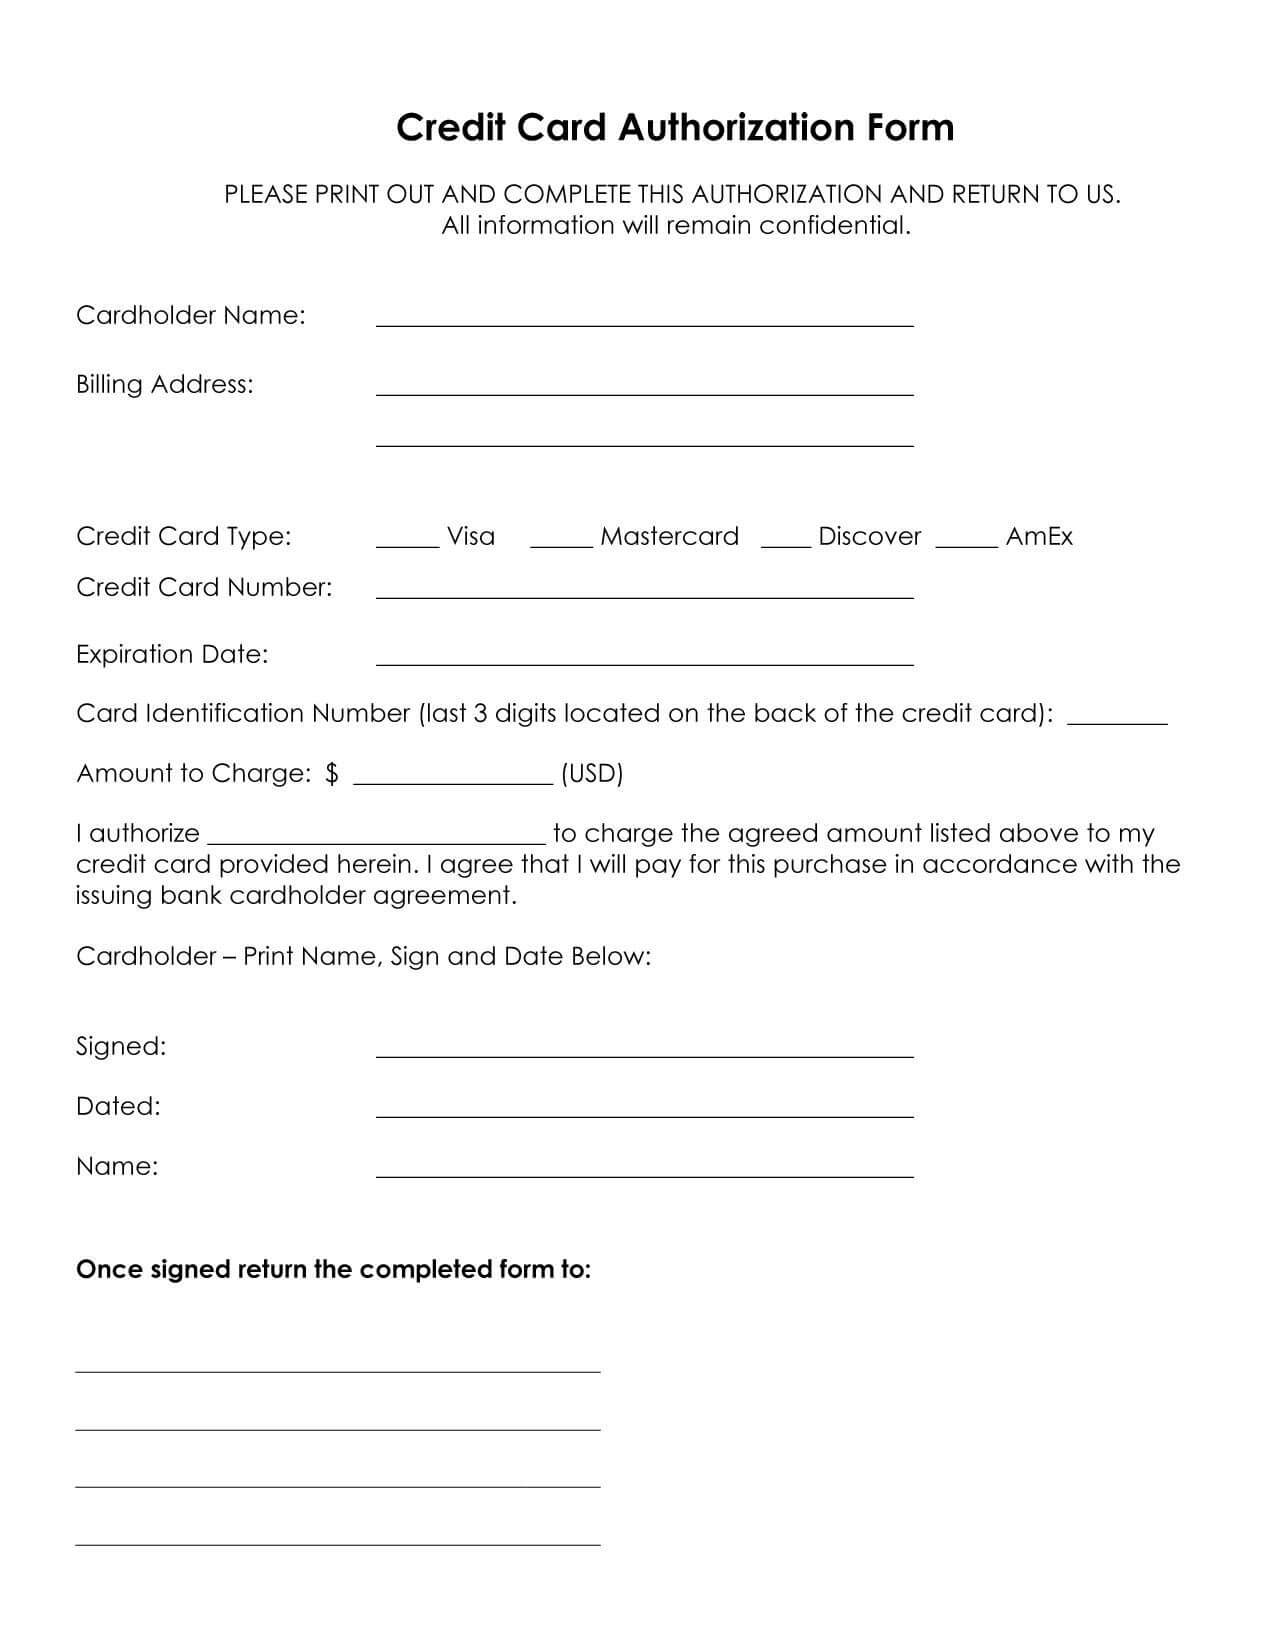 Credit Card Authorization Form Template In 2020 | Credit With Credit Card Payment Slip Template